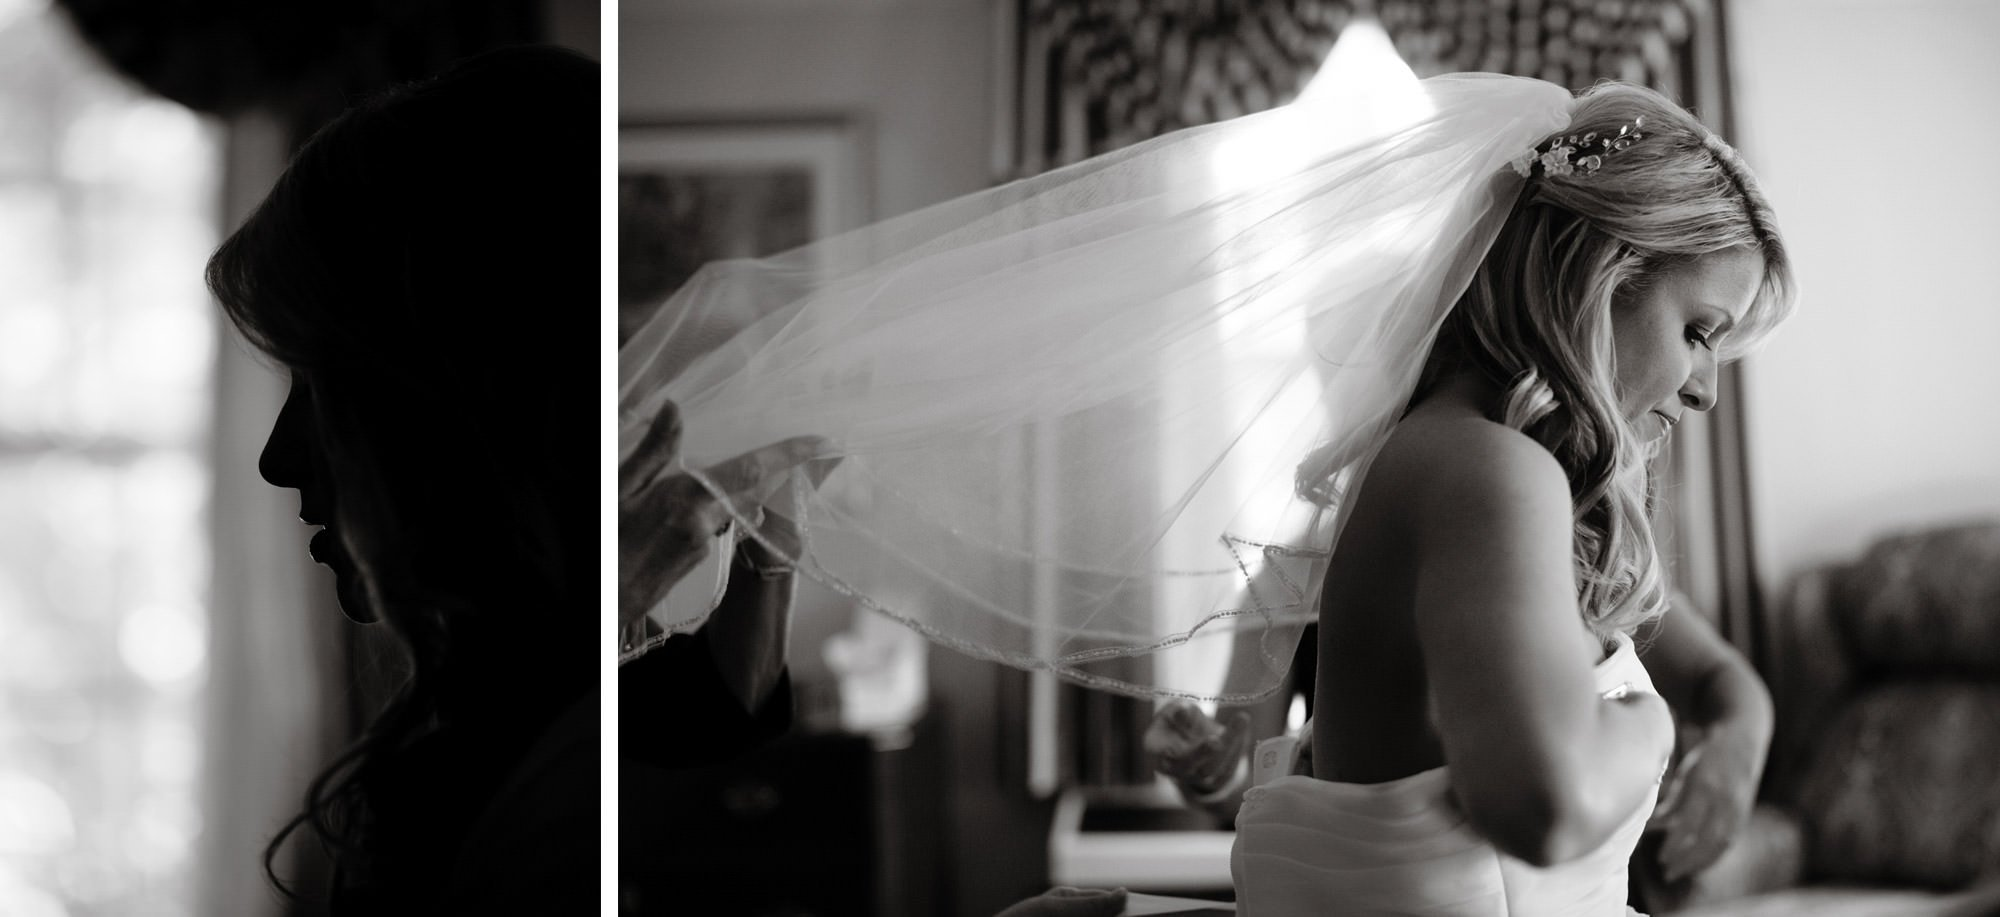 The bride puts on her wedding dress before the ceremony of her Nittany Lion Inn wedding.